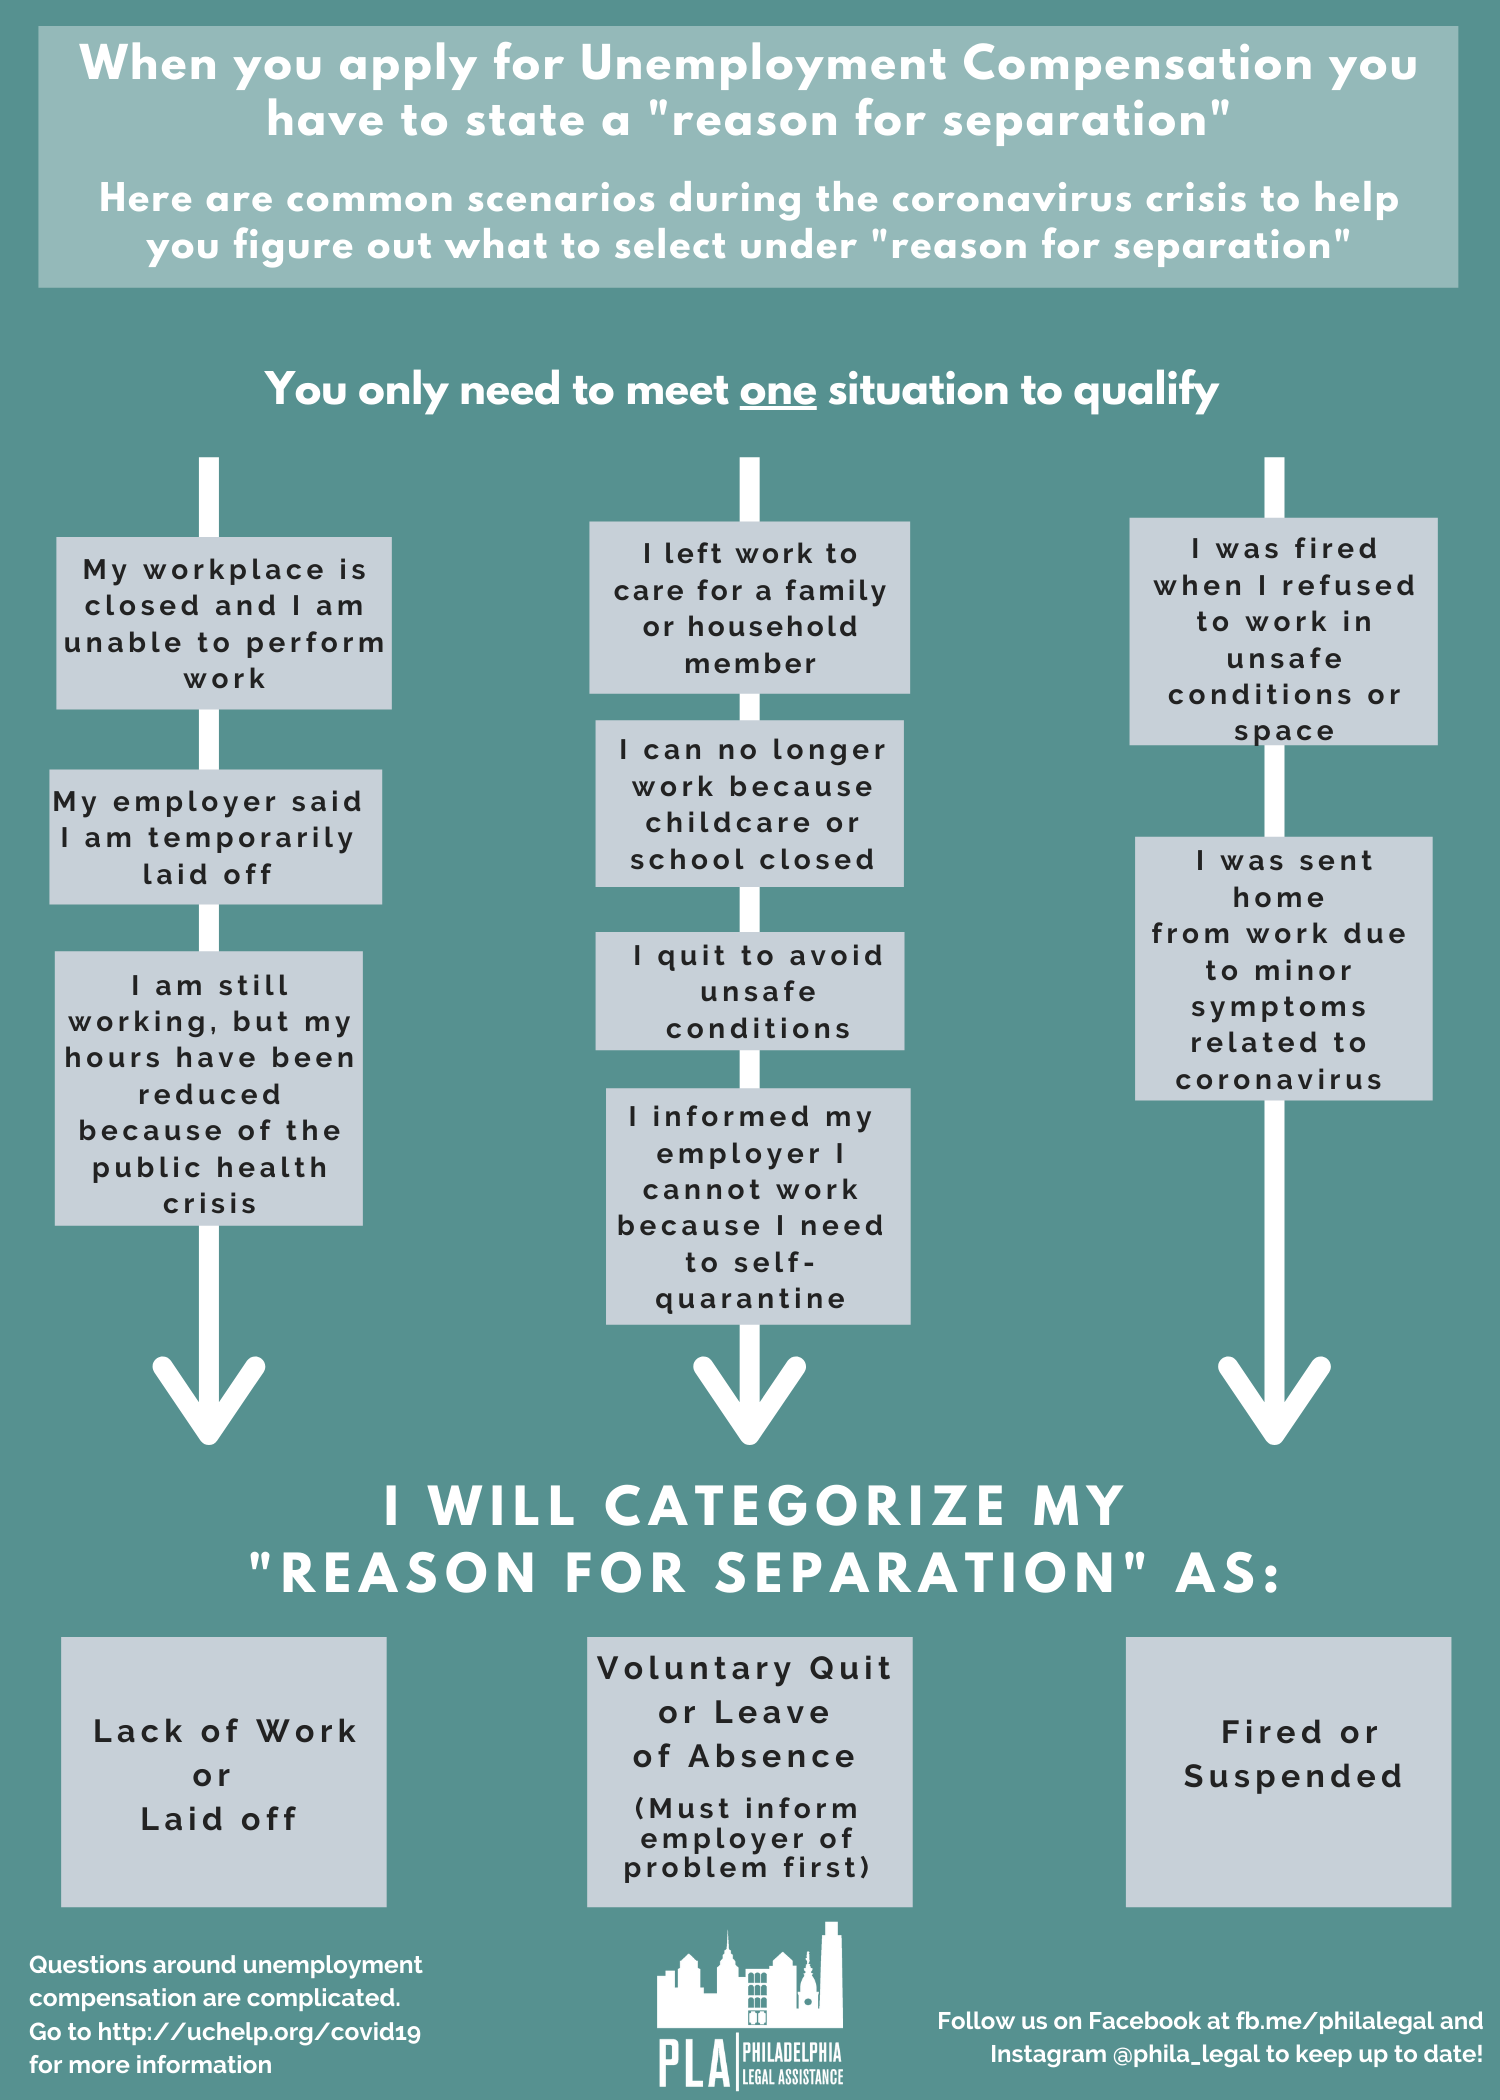 Reason for Separation Flowchart showing the different options for reasons for separation when applying for UC